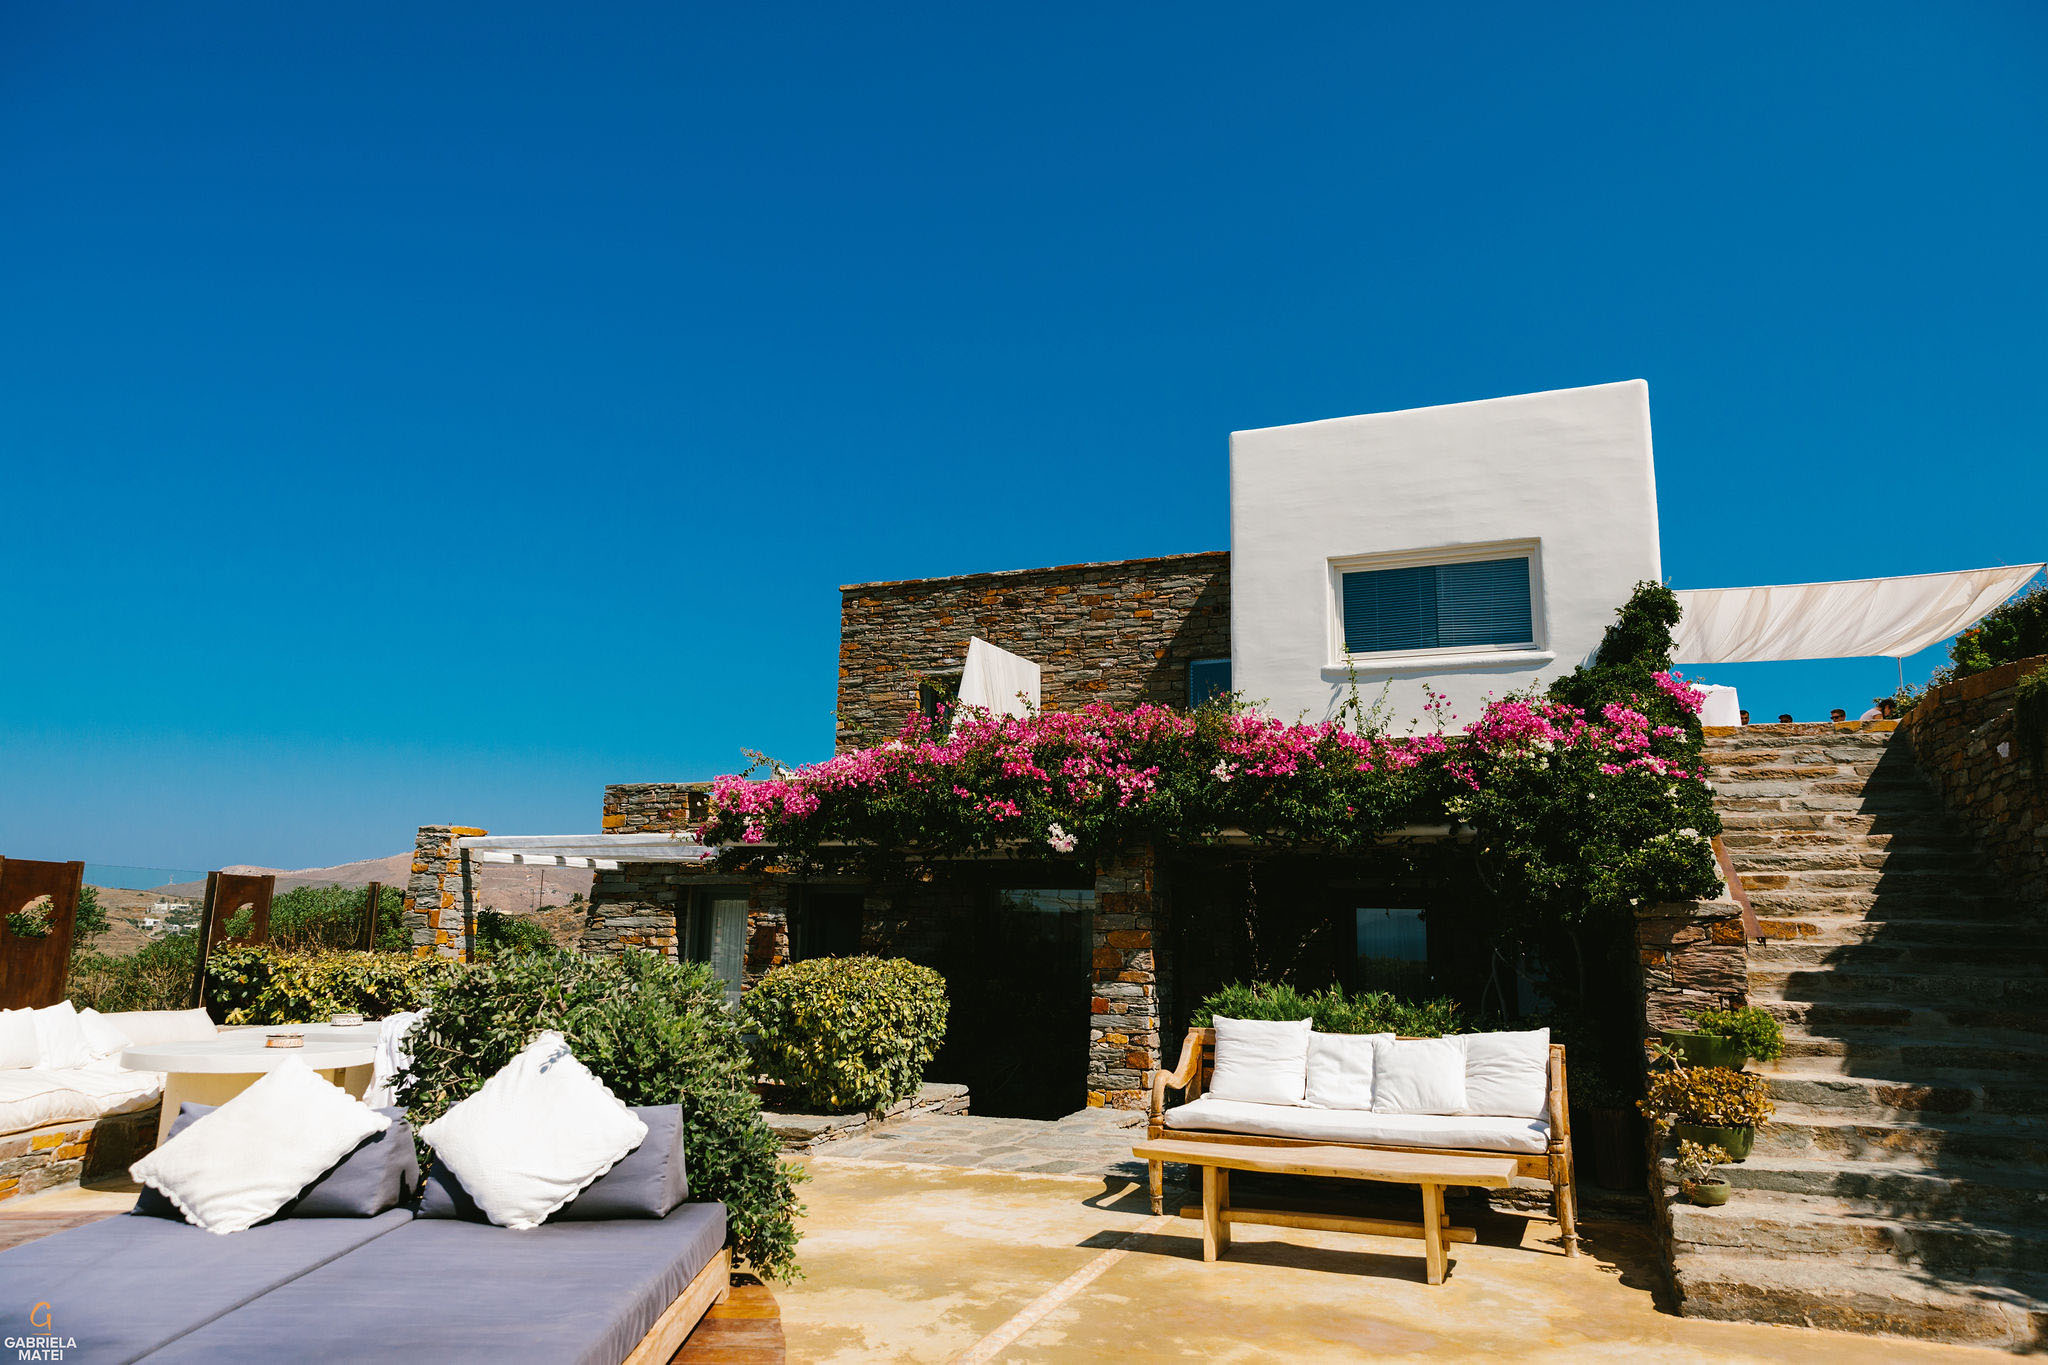 Aigis Suites Weddings, Cyclades Islands weddings, Destination wedding